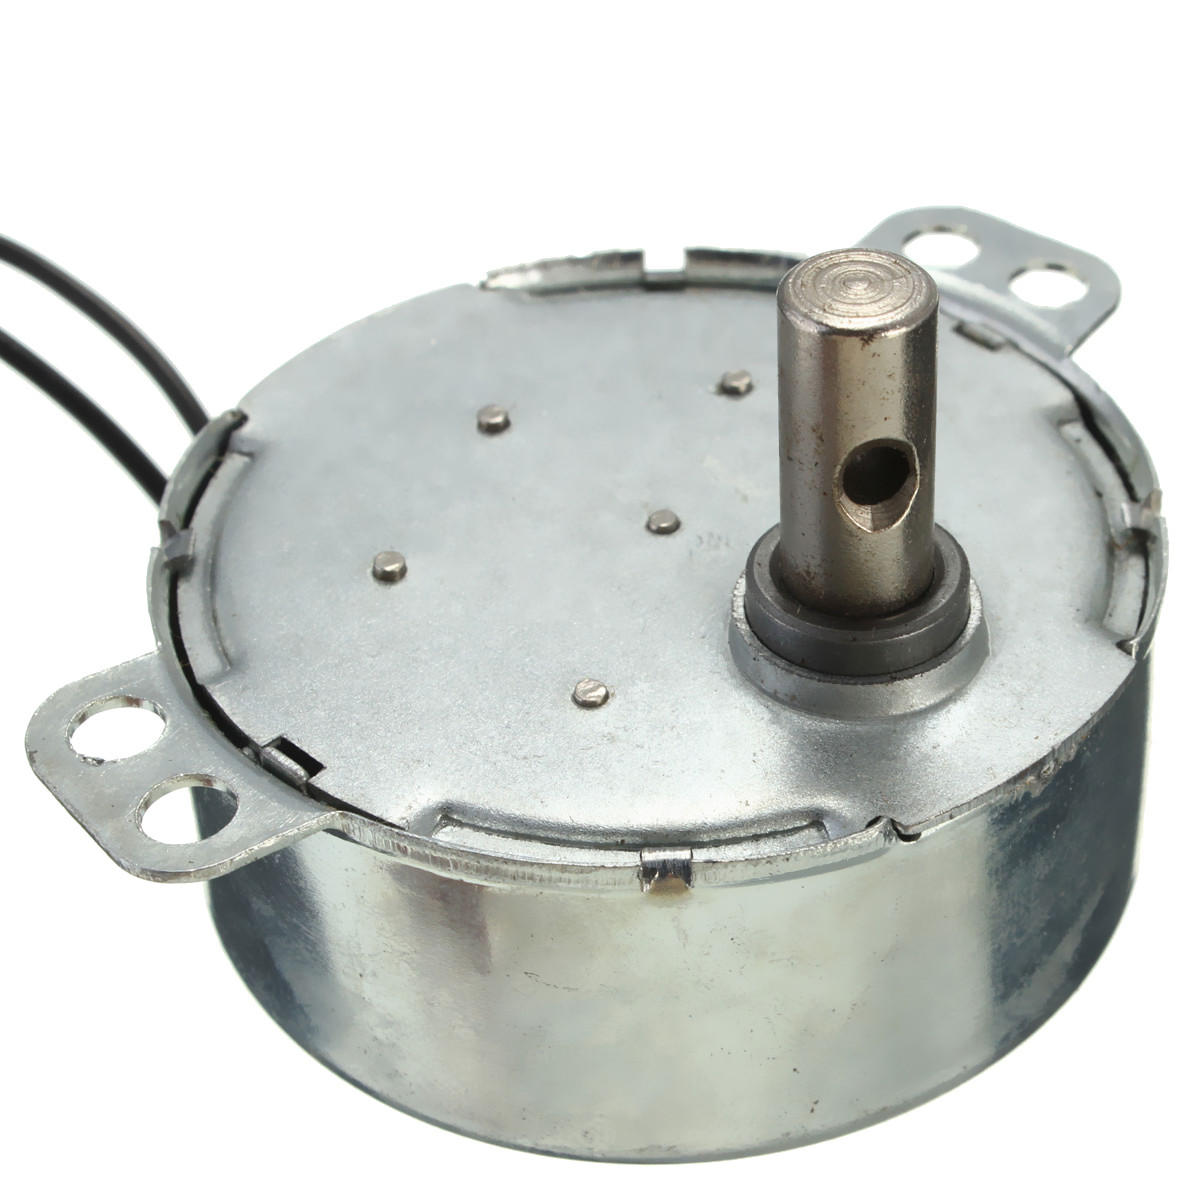 2.5-3RPM Turntable Synchronous Motor 220-240V AC Motor 4W For Microwave